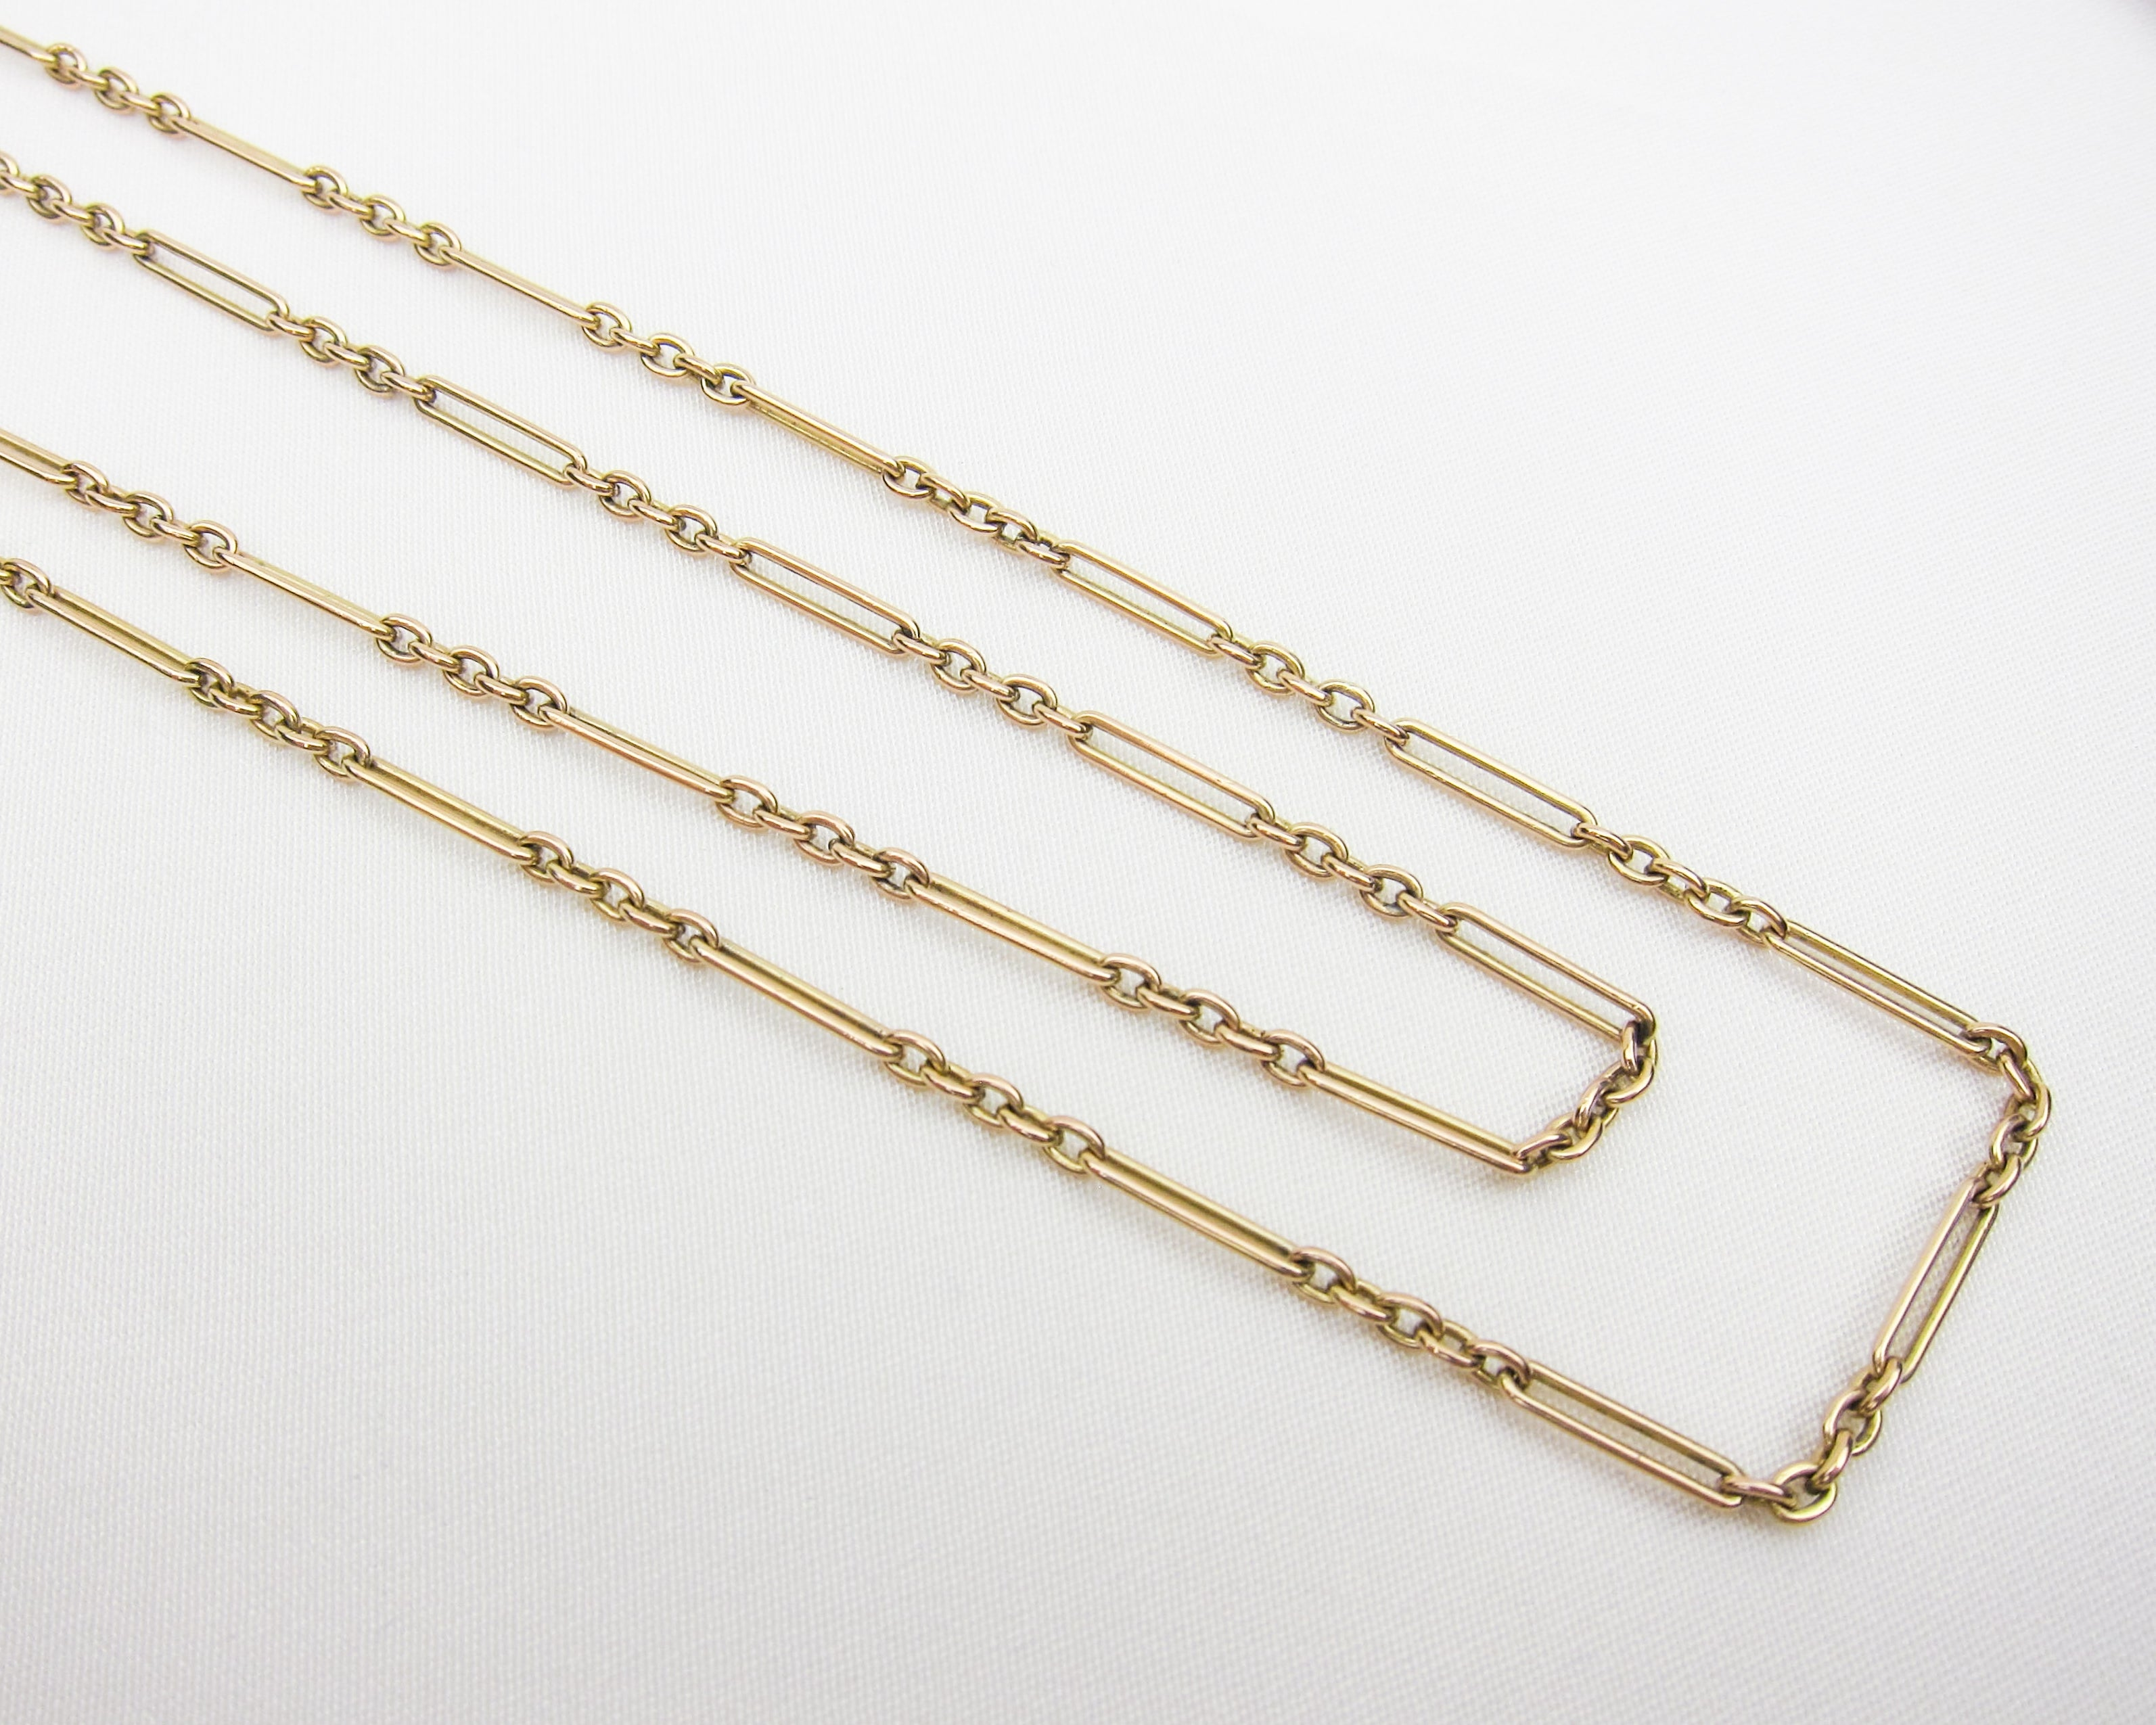 9KT-gold-ornate-chain